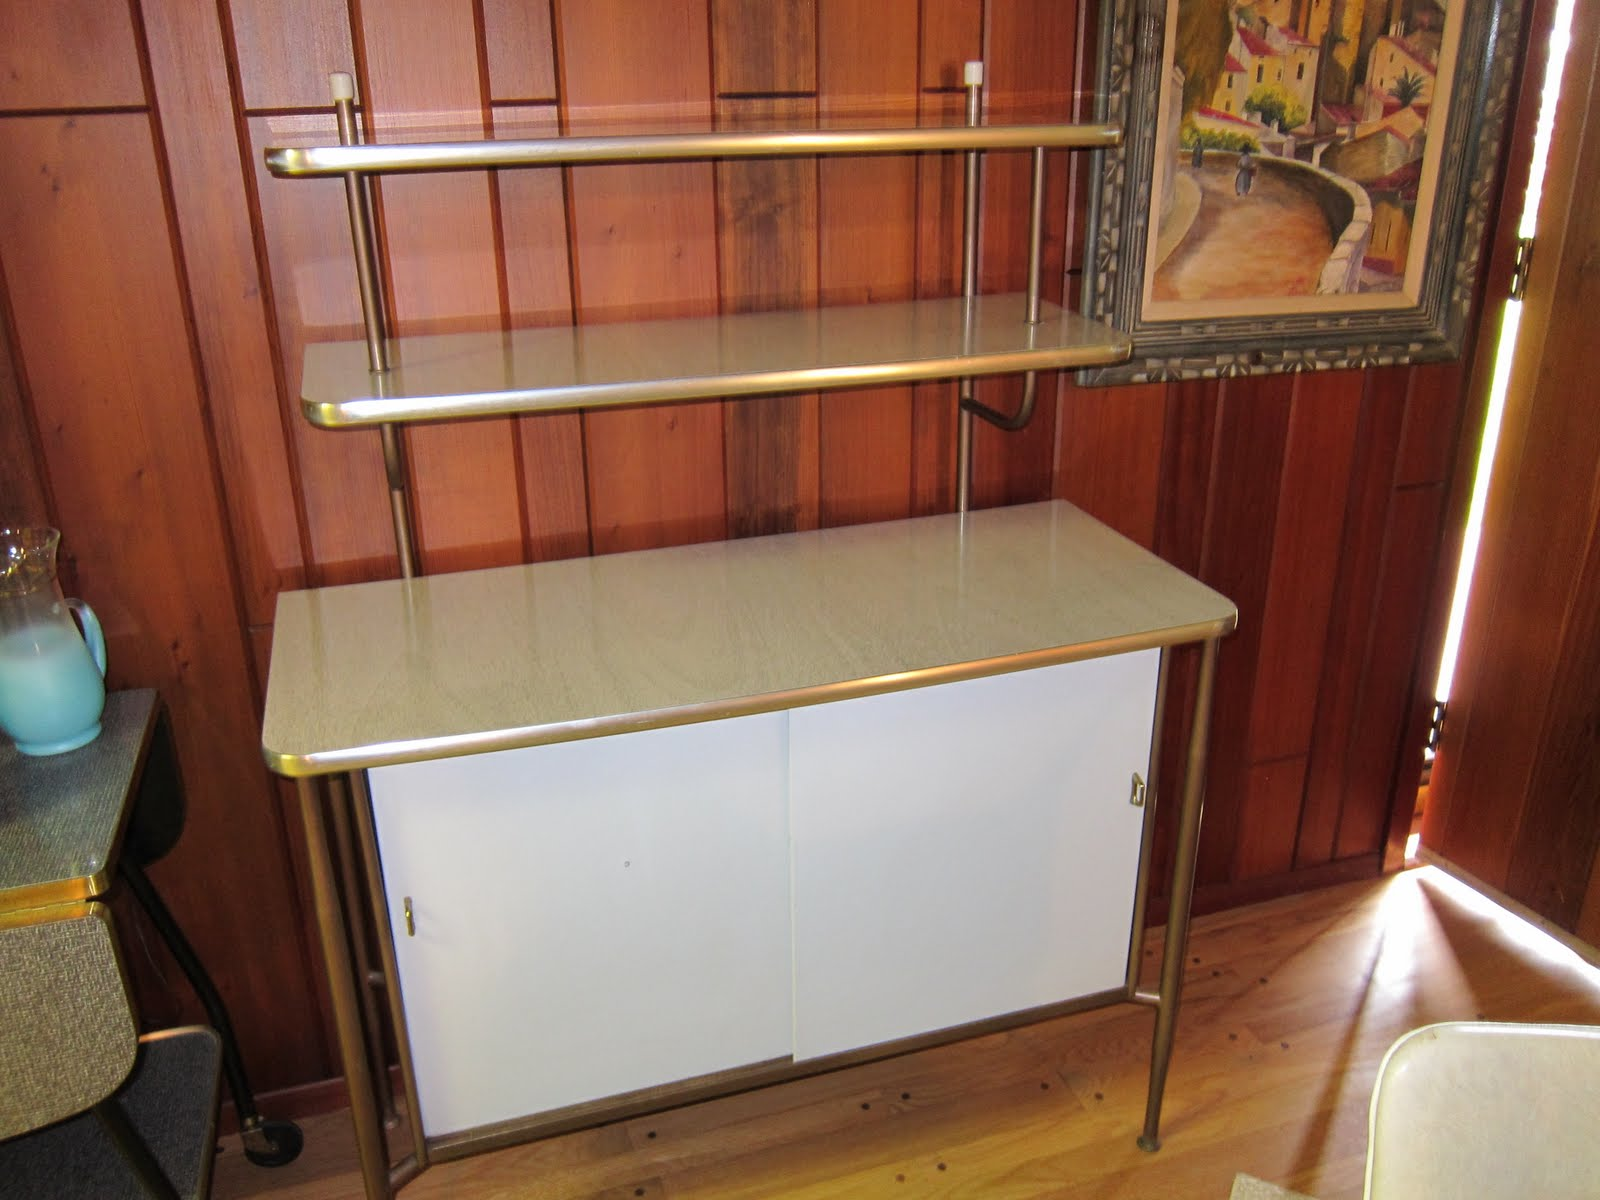 Buffet Formica Vintage The Vintage Life Buffet For Formica Dining Table Found